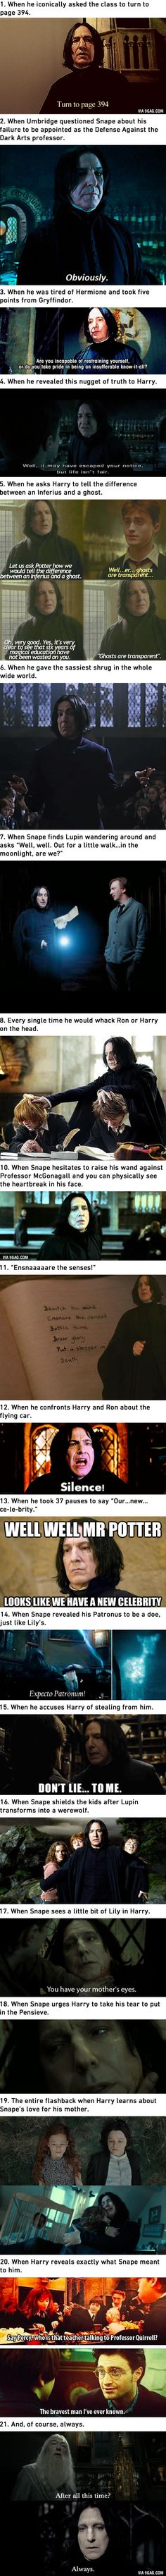 "21 Professor Snape Moments In ""Harry Potter"" That Make Us Love Him"